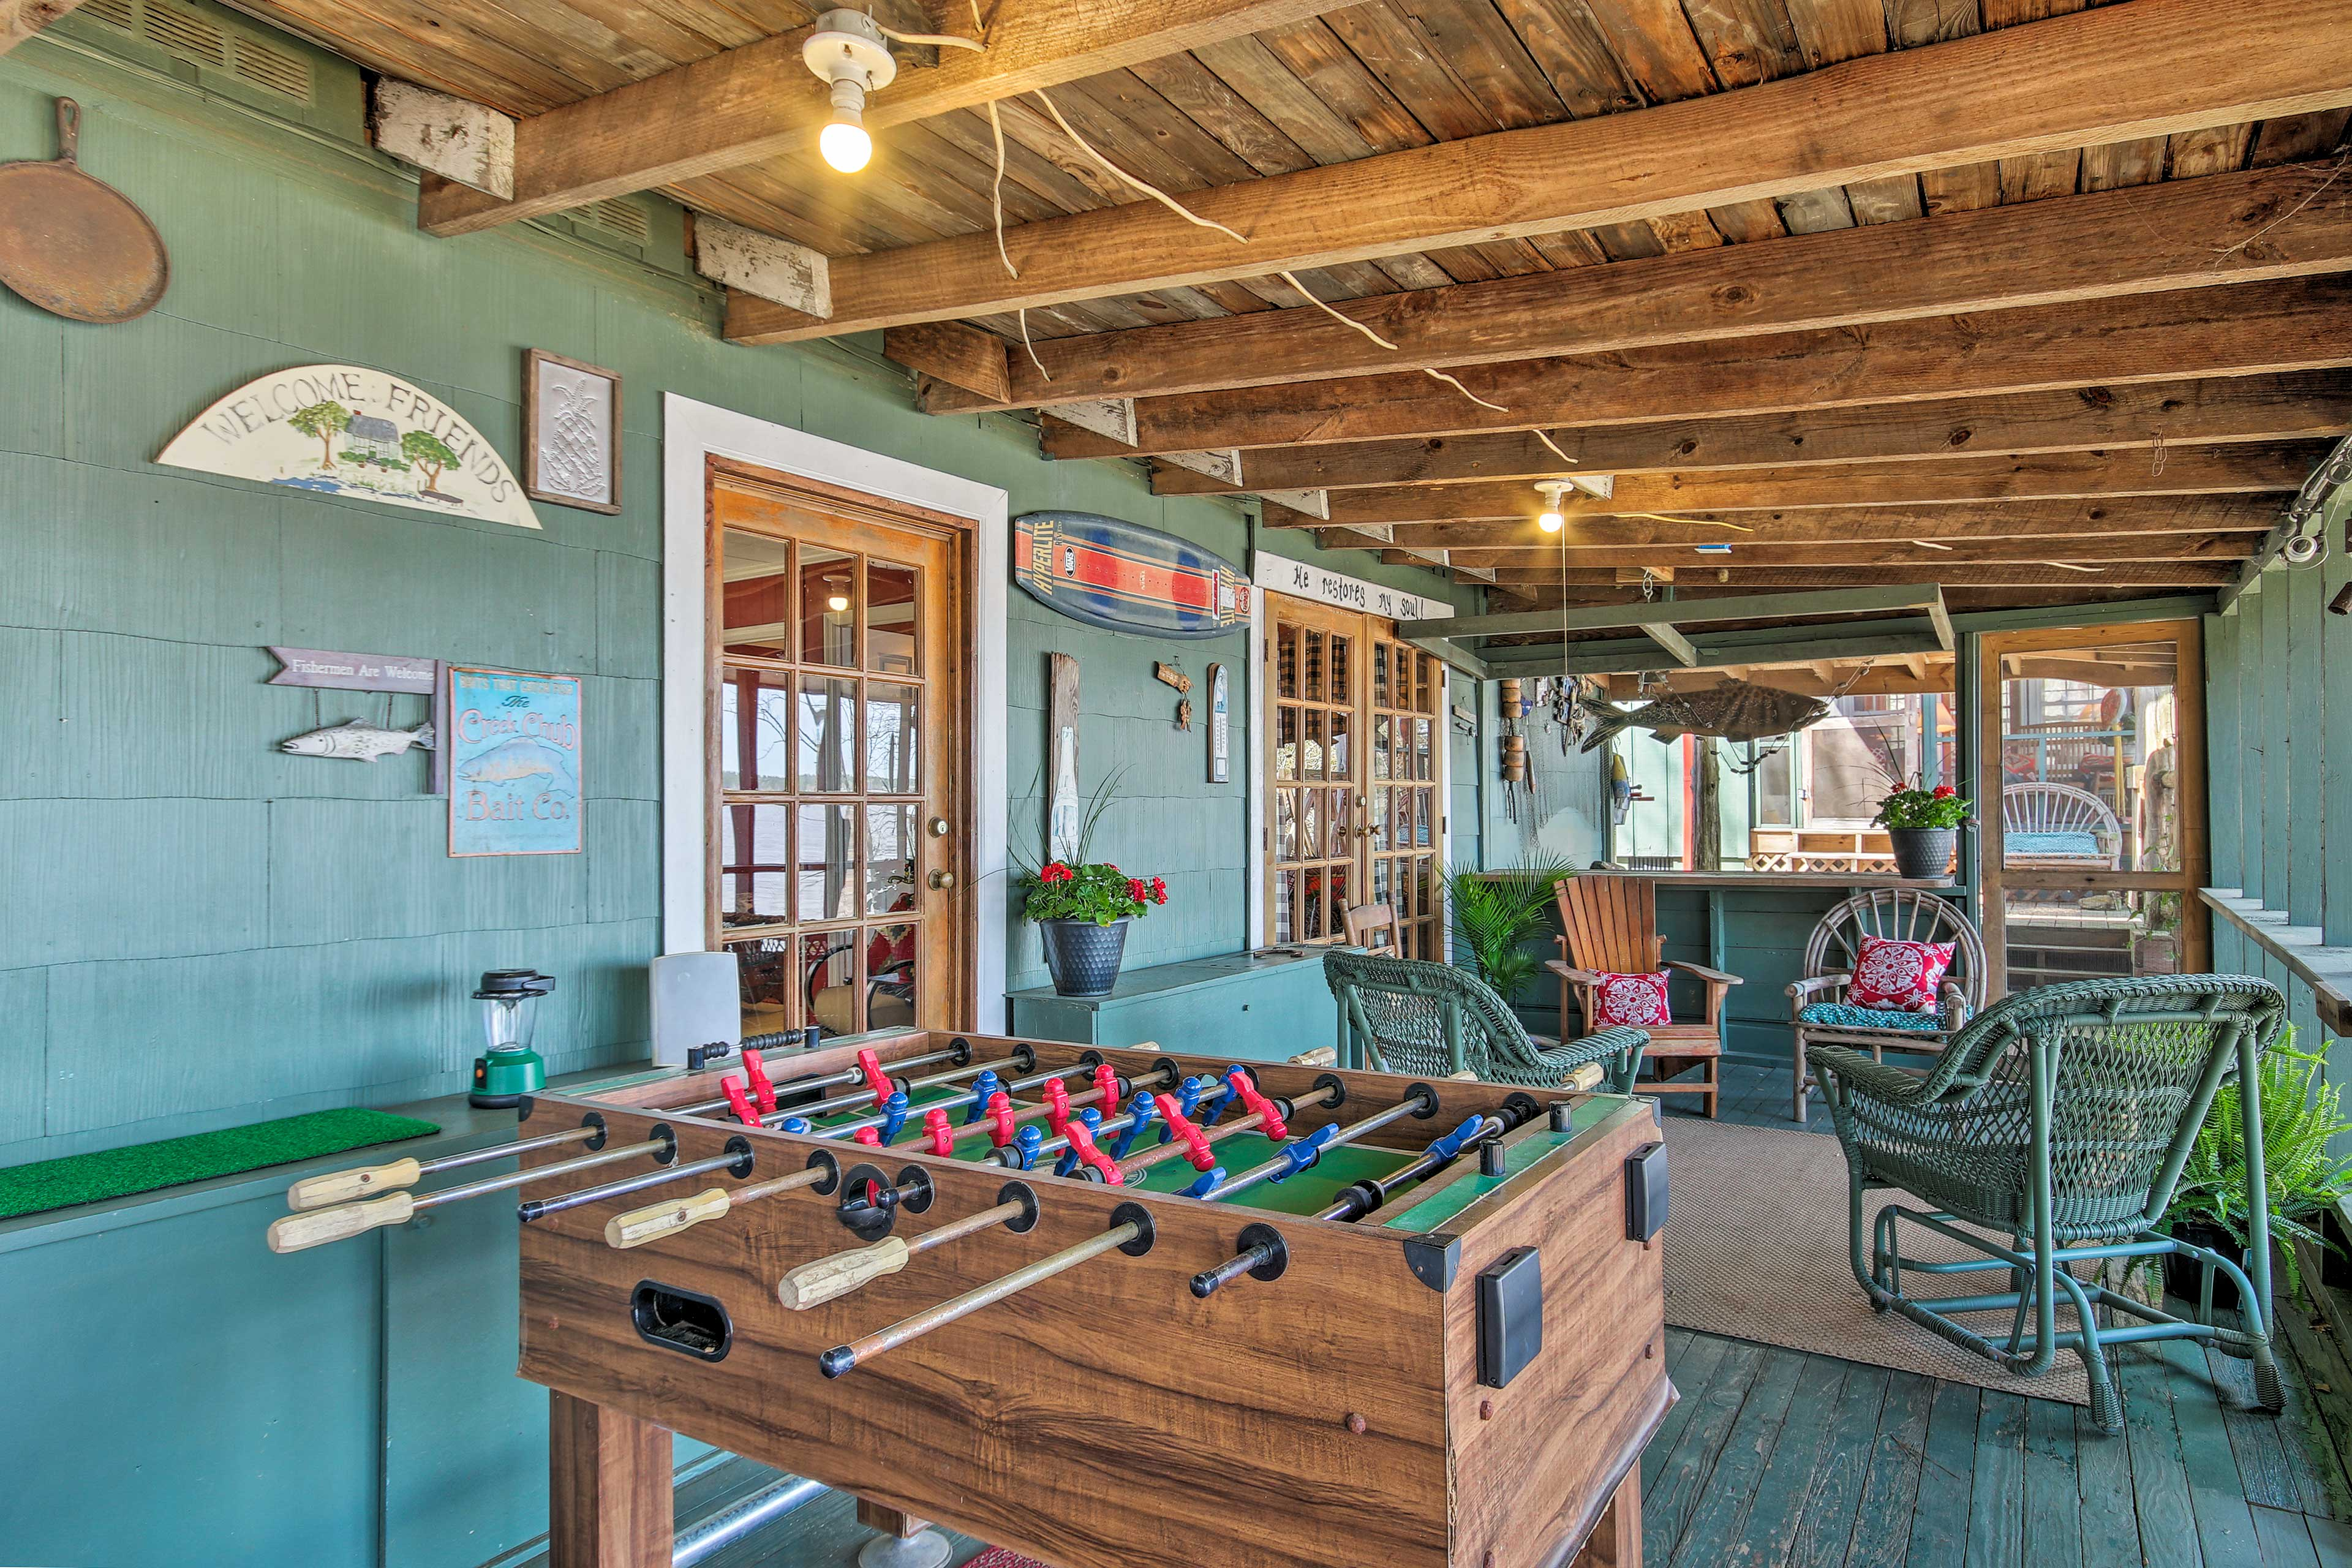 The guest house has a covered porch with a Foosball table!